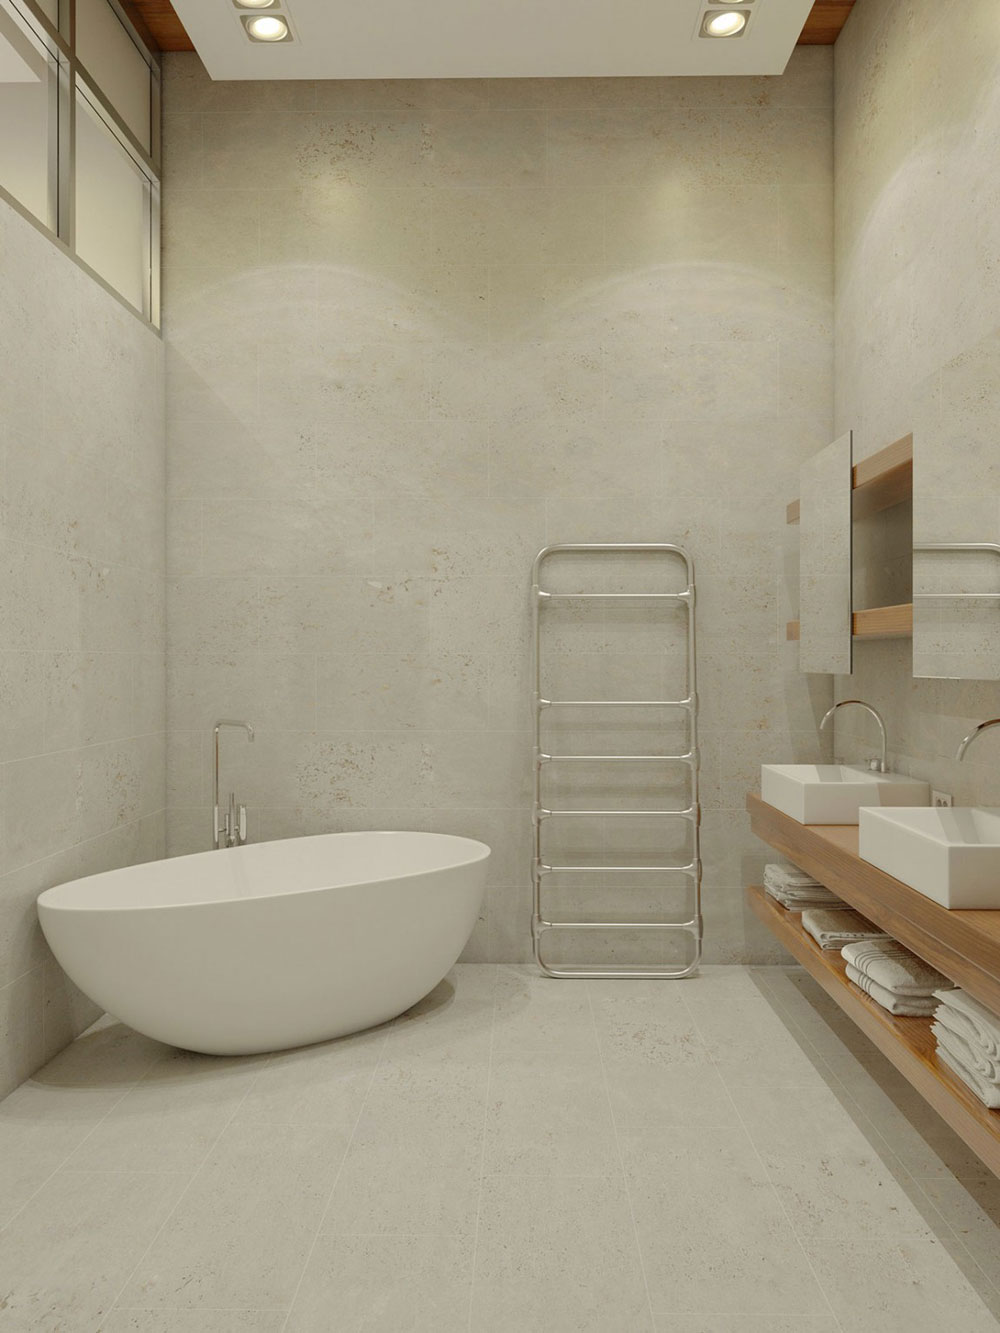 Looking for inspiration for modern bathroom interiors 5 Looking for inspiration for modern bathroom interiors?